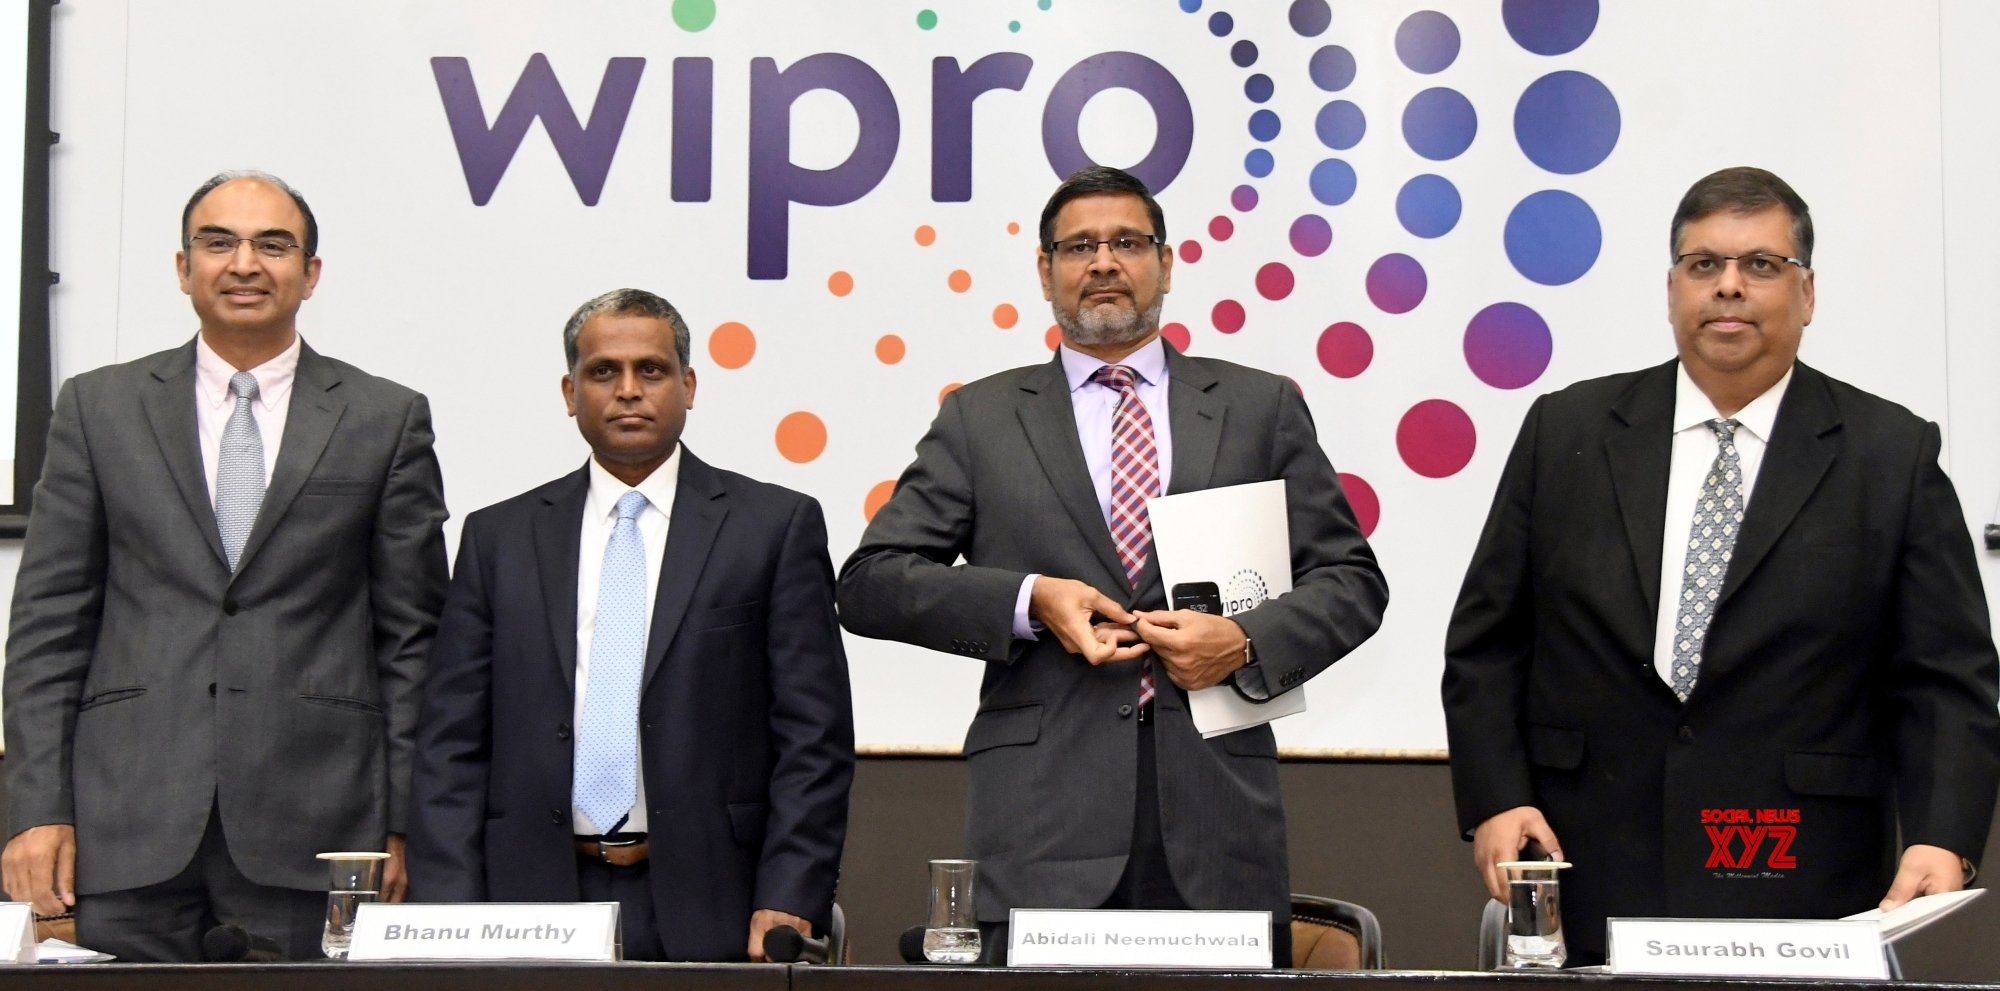 Wipro net grows 12.4% for fiscal 2018-19